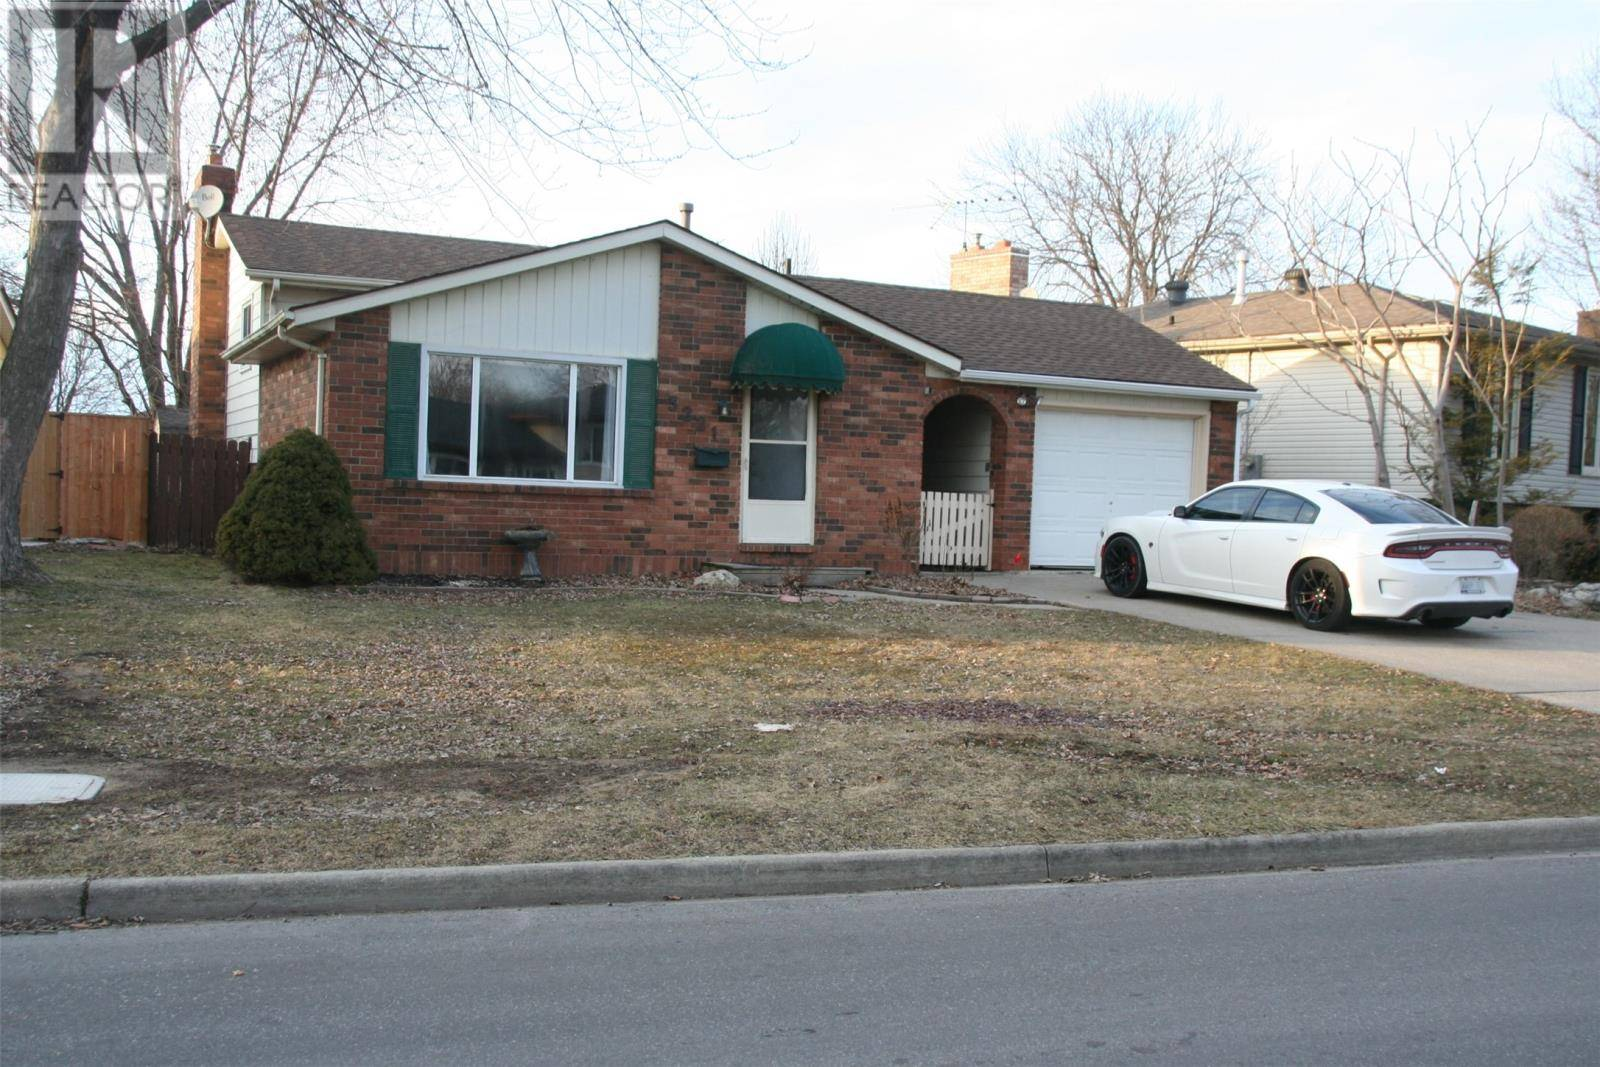 House for sale at 3221 Halpin Rd Windsor Ontario - MLS: 20003016